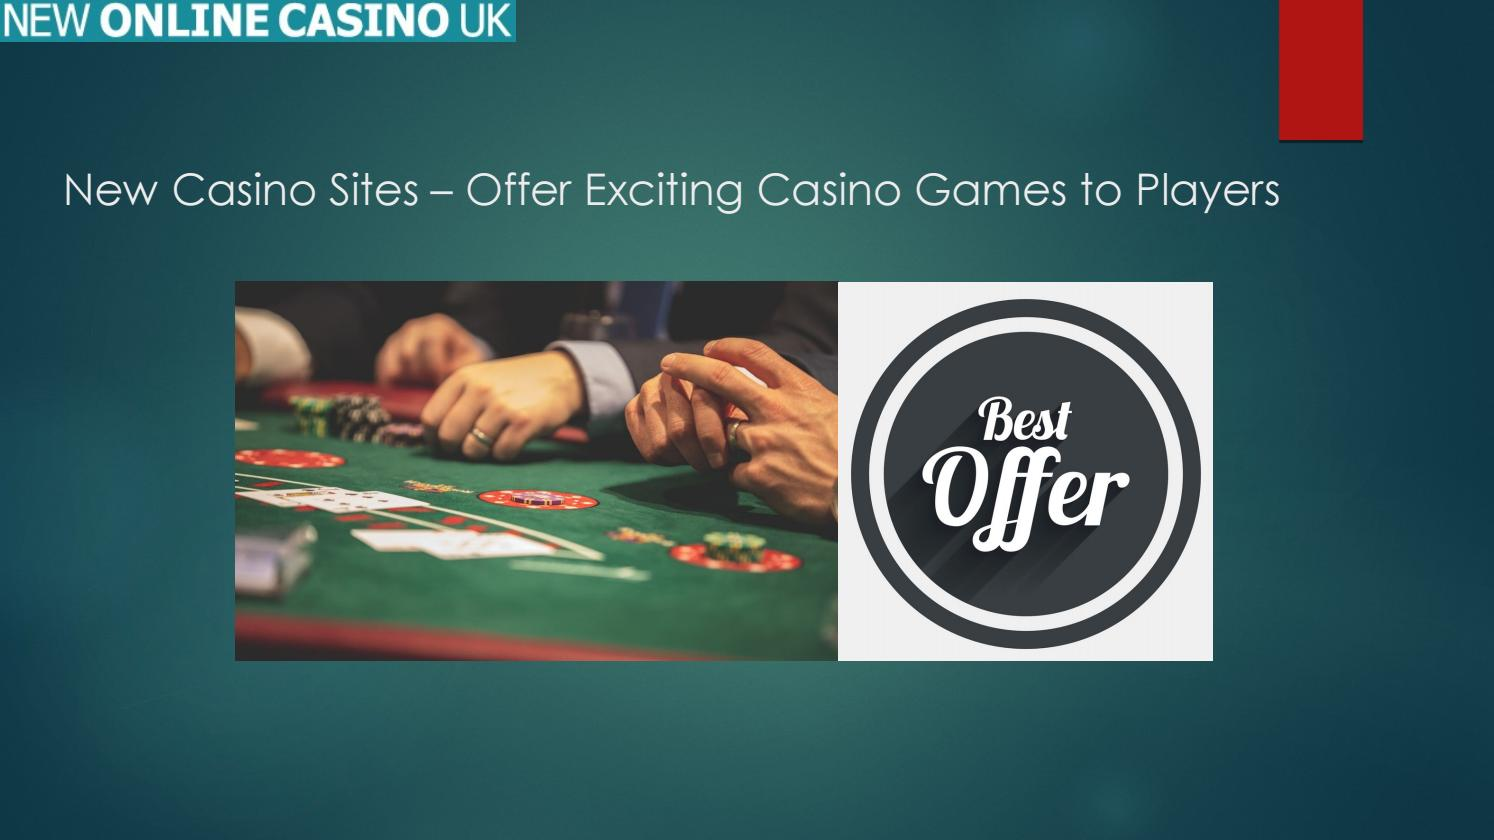 New Casino Sites Offer Exciting Casino Games To Players By